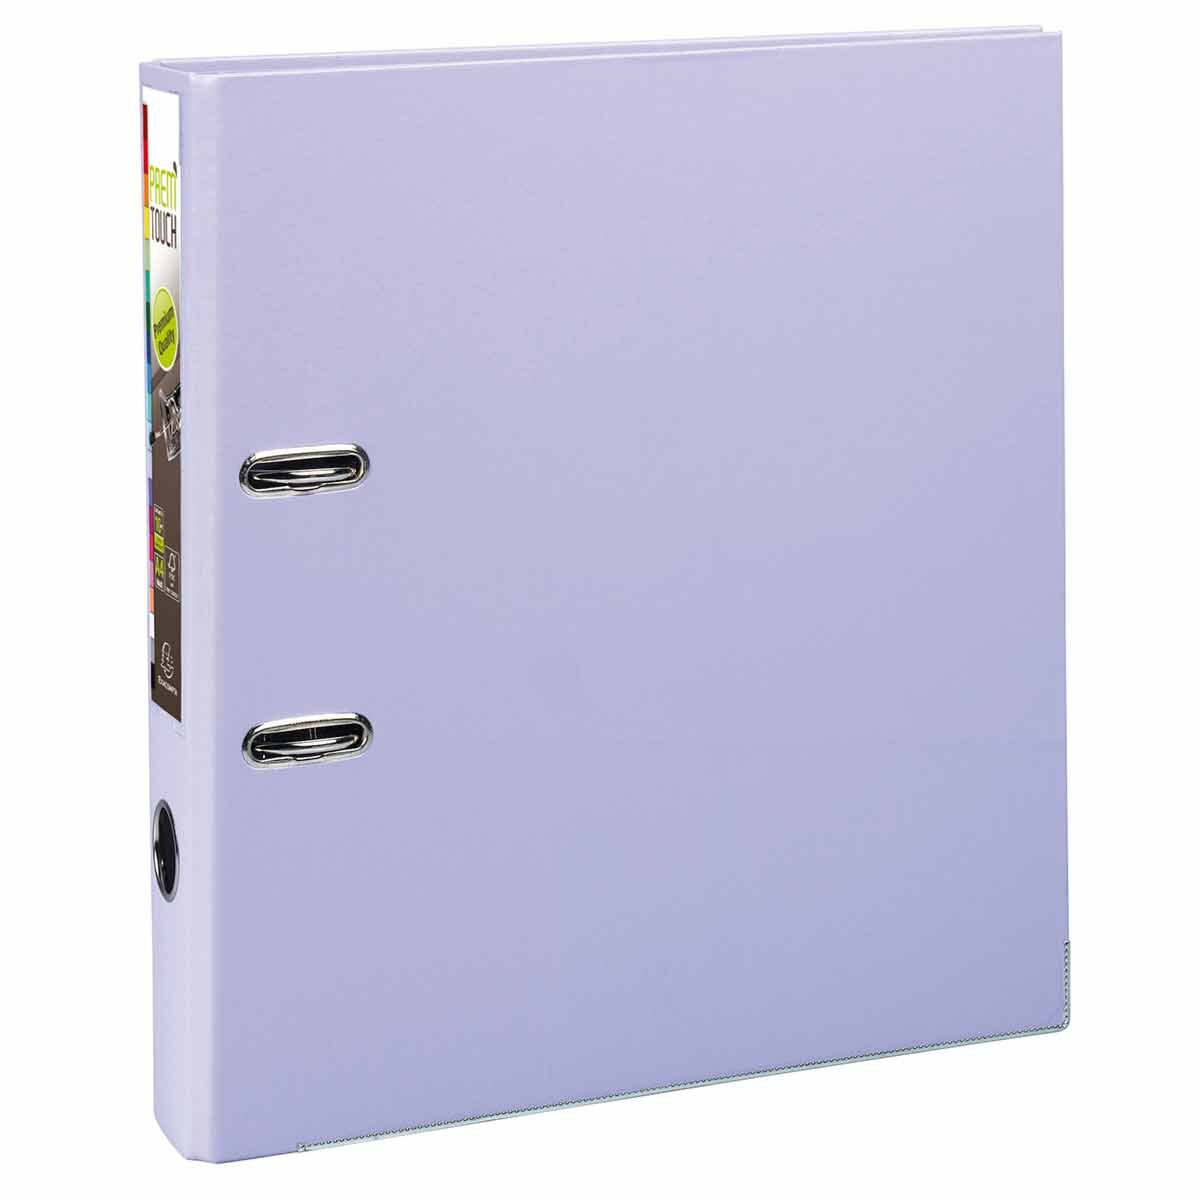 Exacompta PremTouch Lever Arch File A4 Plus PP 50mm Pack of 10 Lilac